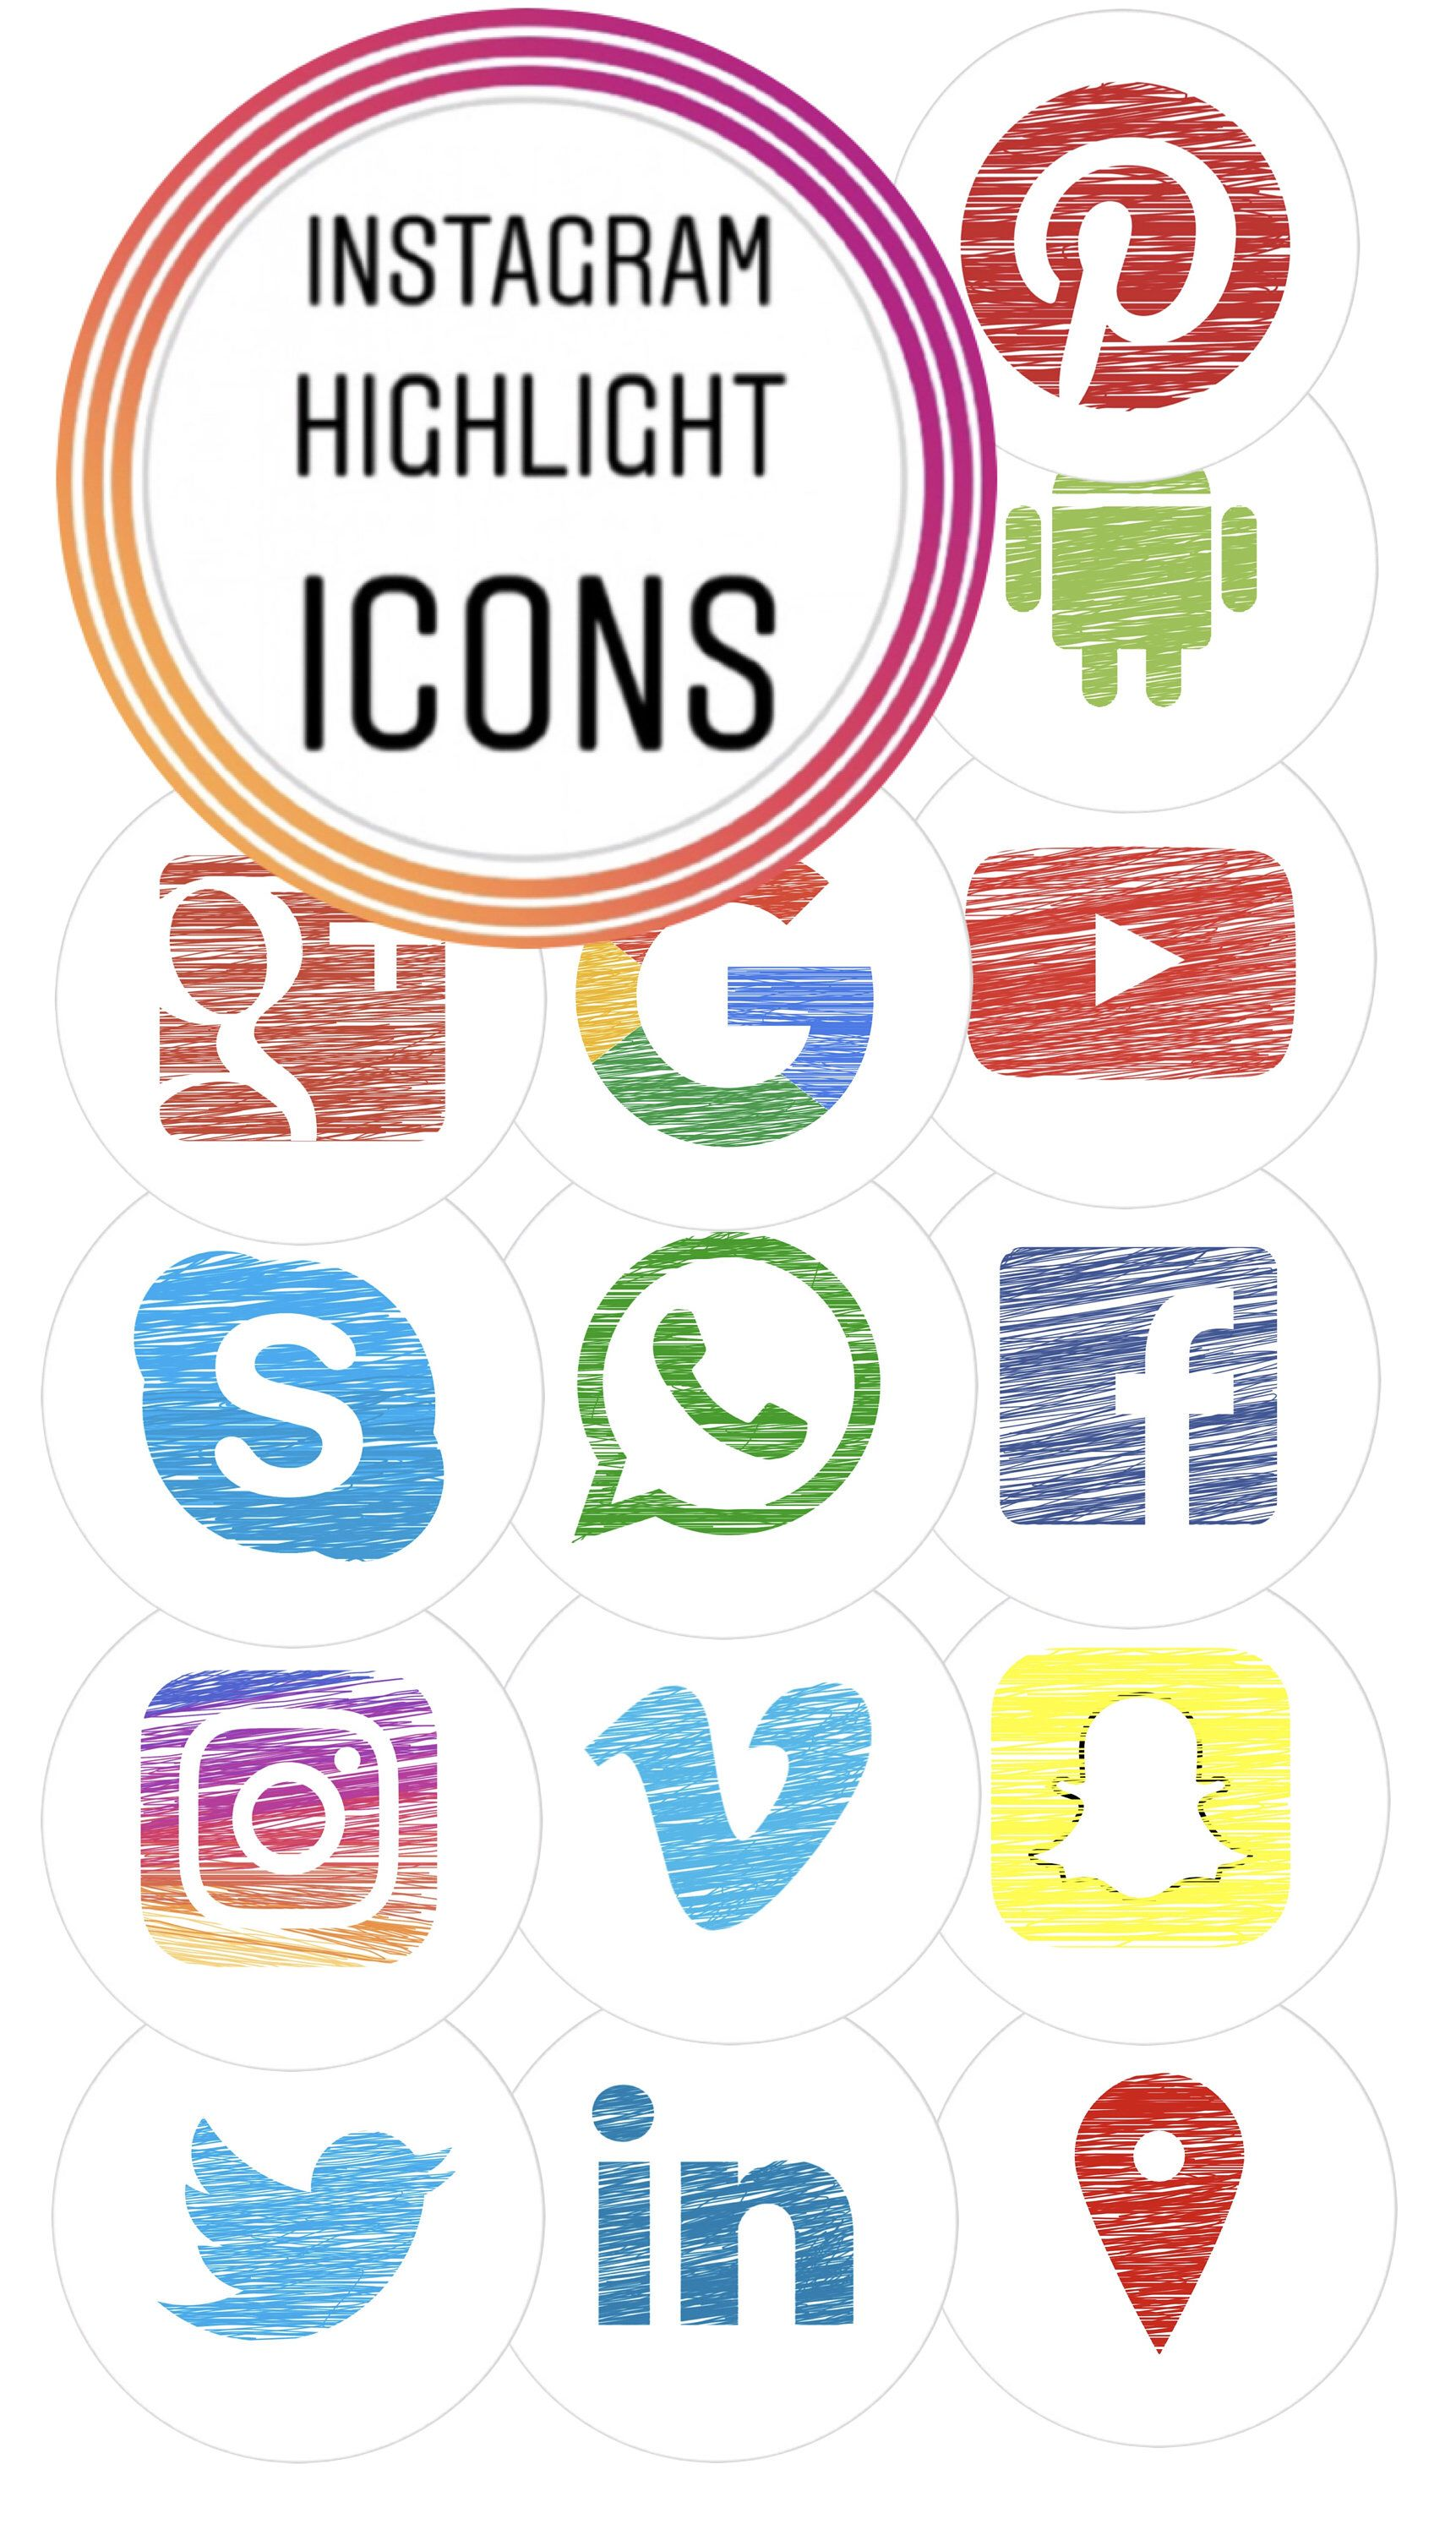 Social Media Cover Icons for Instagram Highlights! by